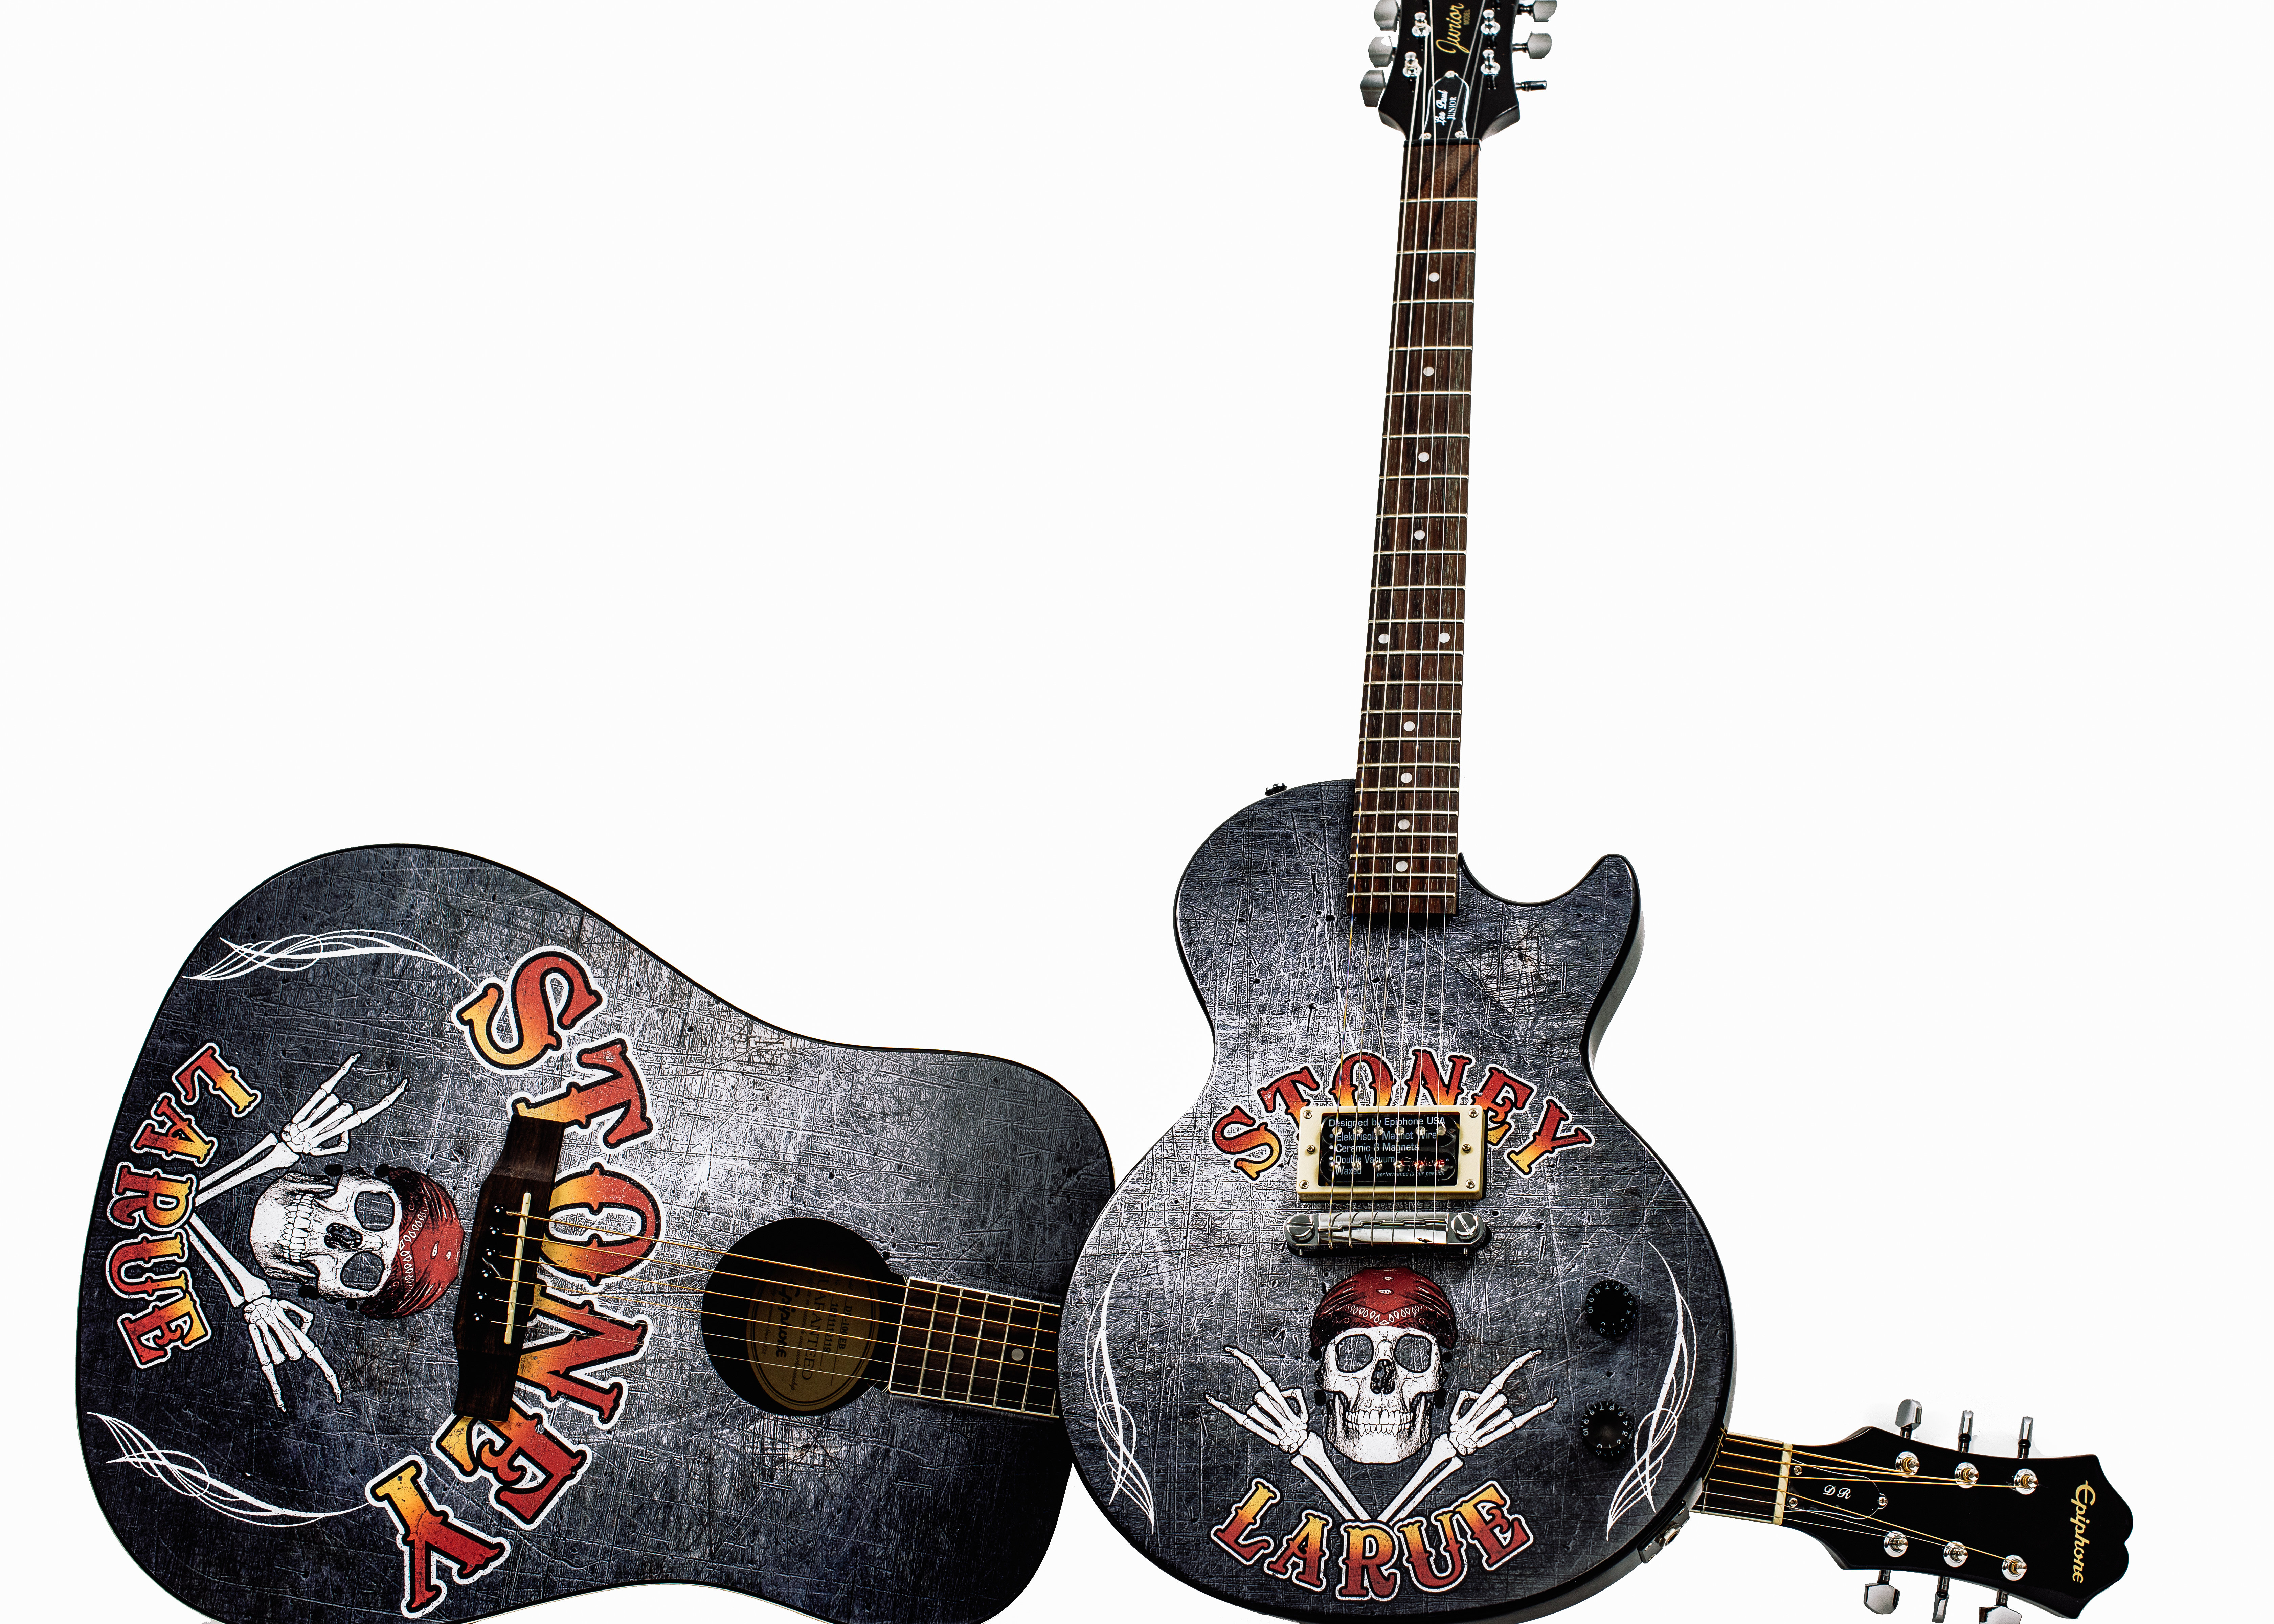 Stoney LaRue Custom Wrapped Autographed Guitar (Electric or Acoustic) Stoney LaRue Custom Wrapped Guitar (Electric or Acoustic)